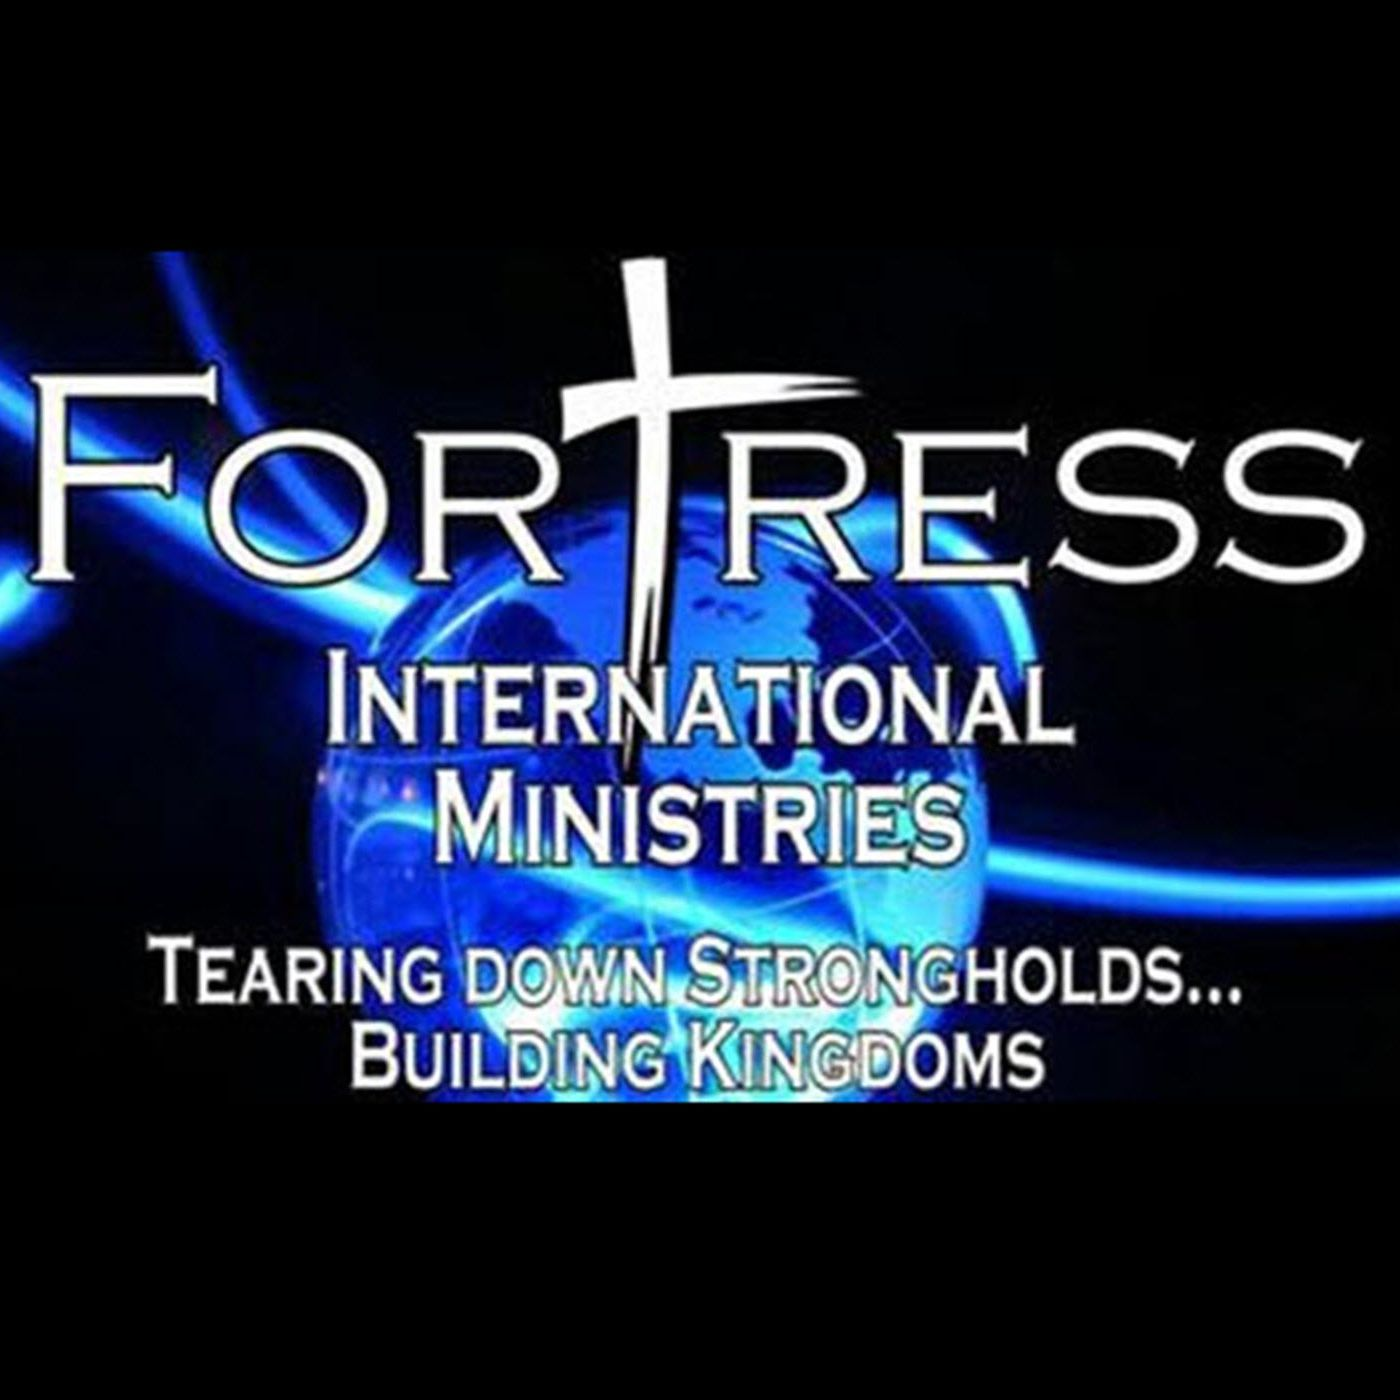 Fortress International